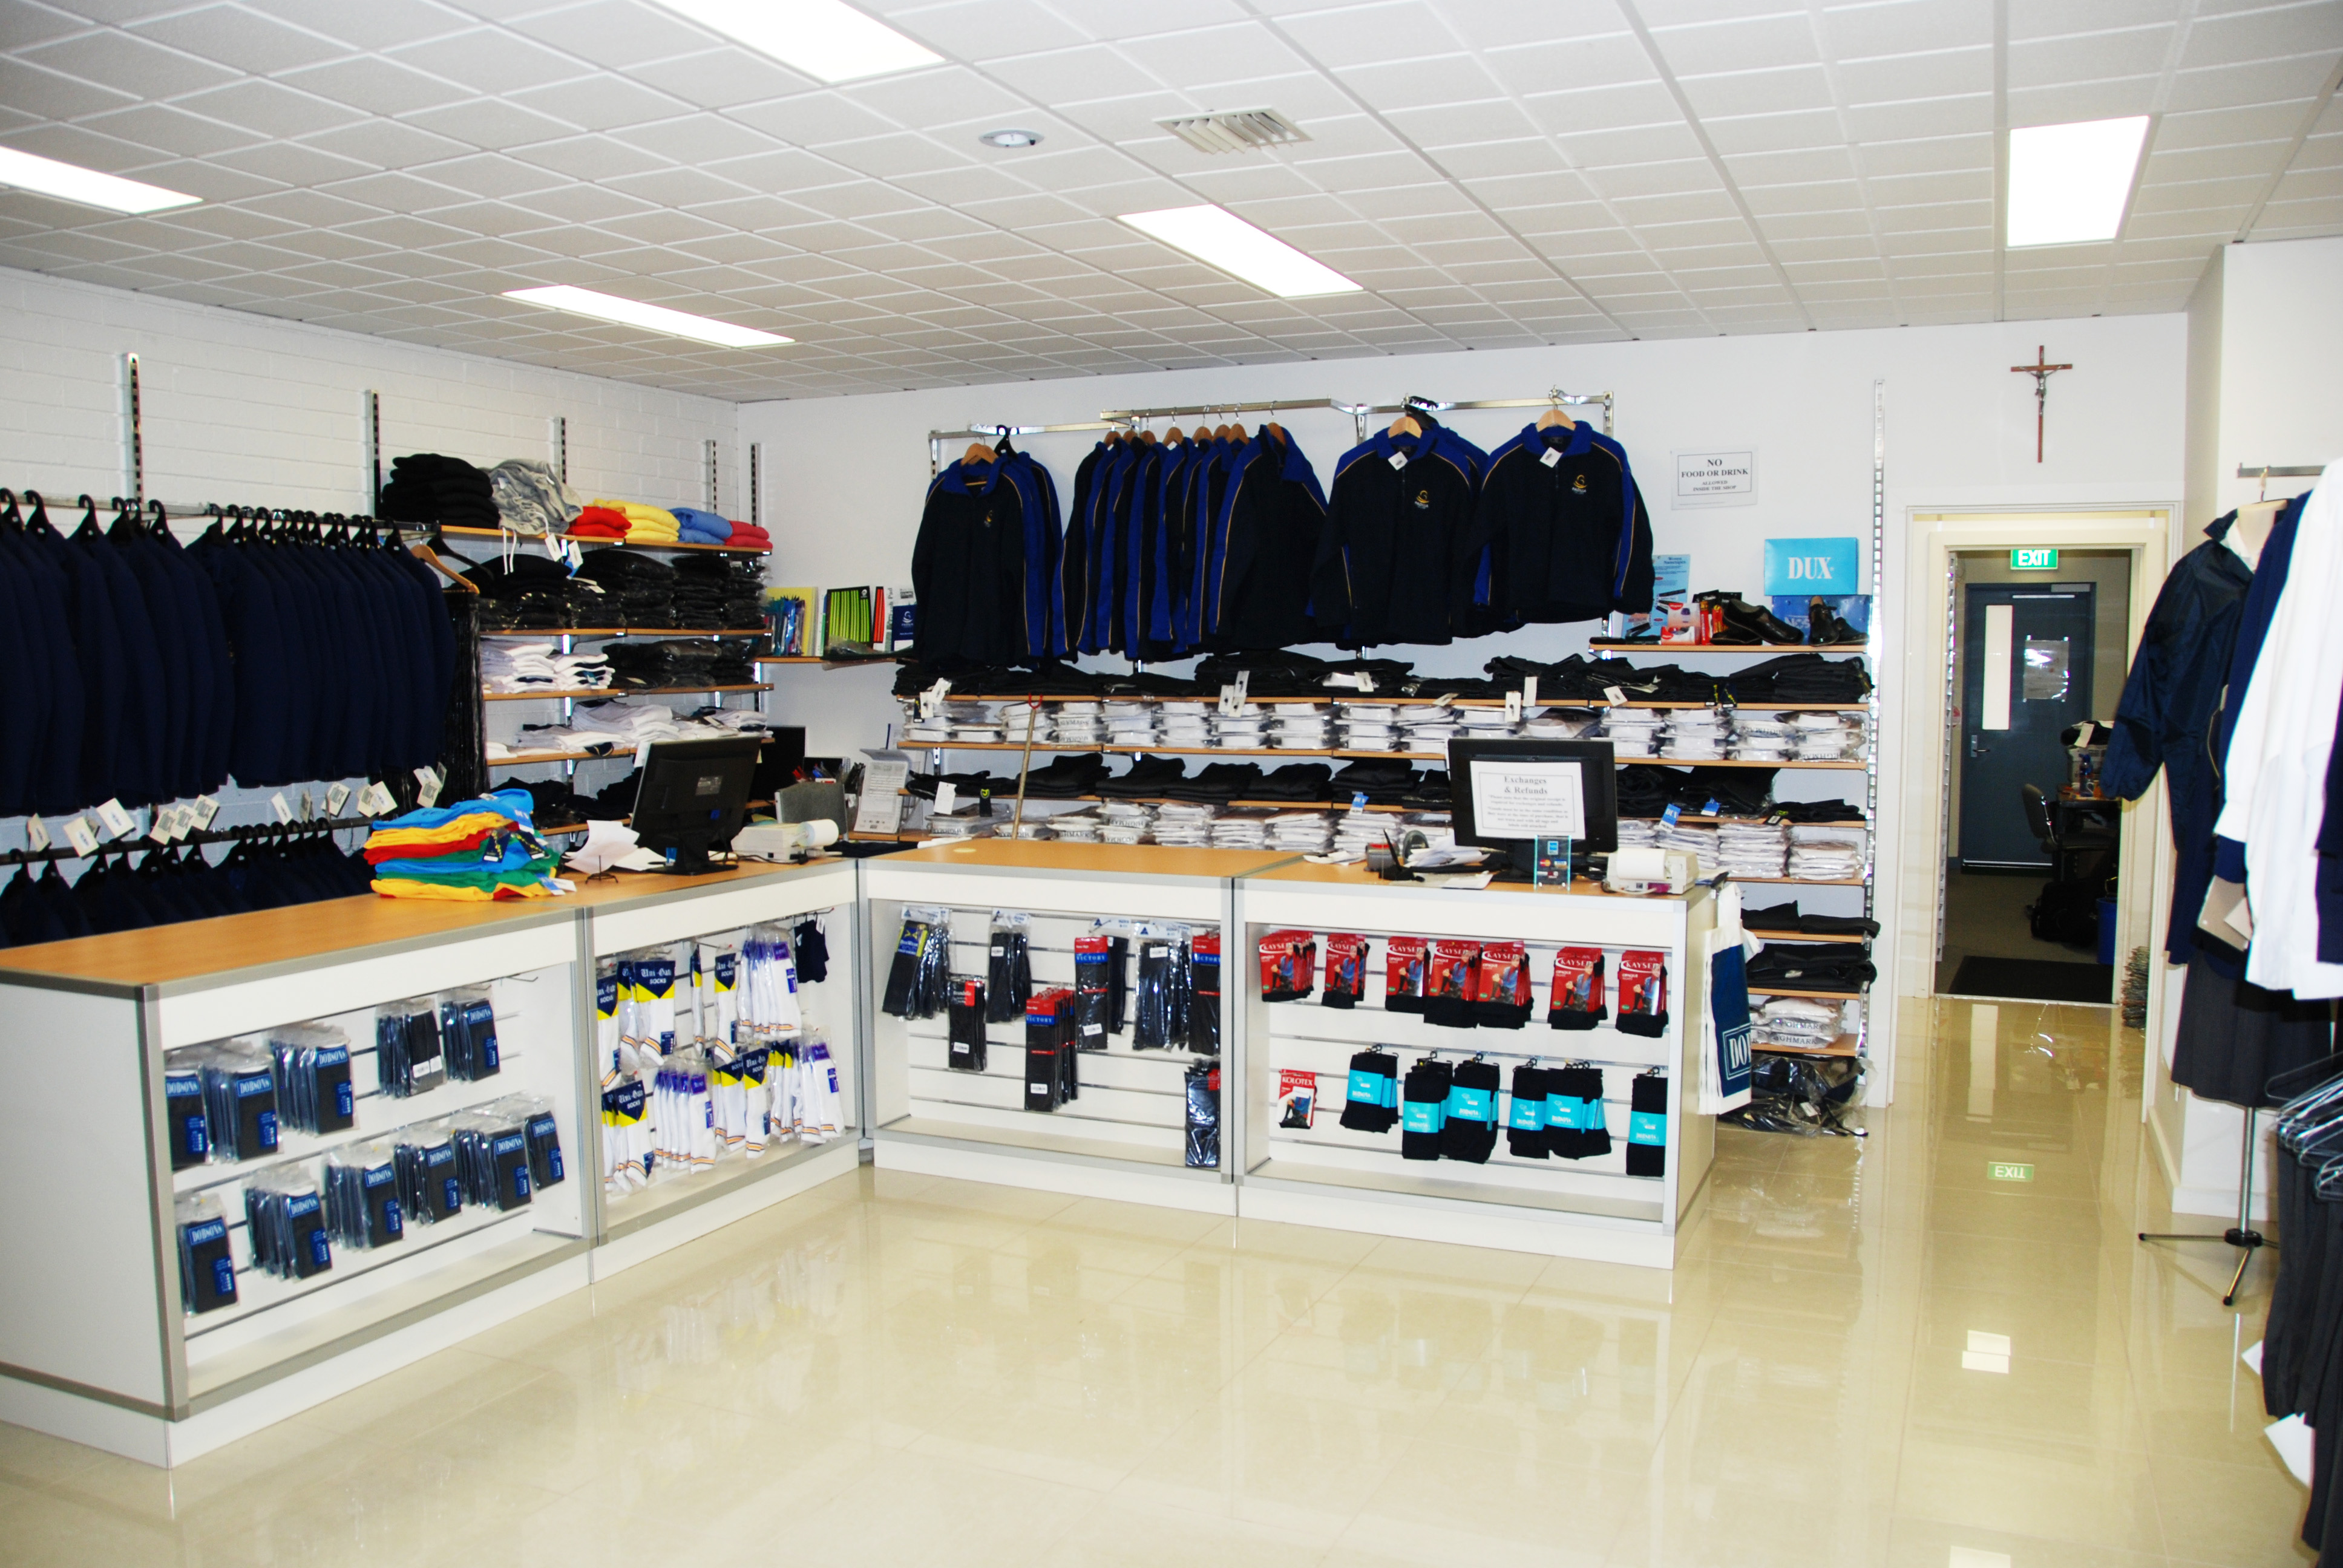 Find a Risse Brothers Store About Risse Brothers School Uniforms We are proud to offer top-quality merchandise coupled with the best customer service in the industry.